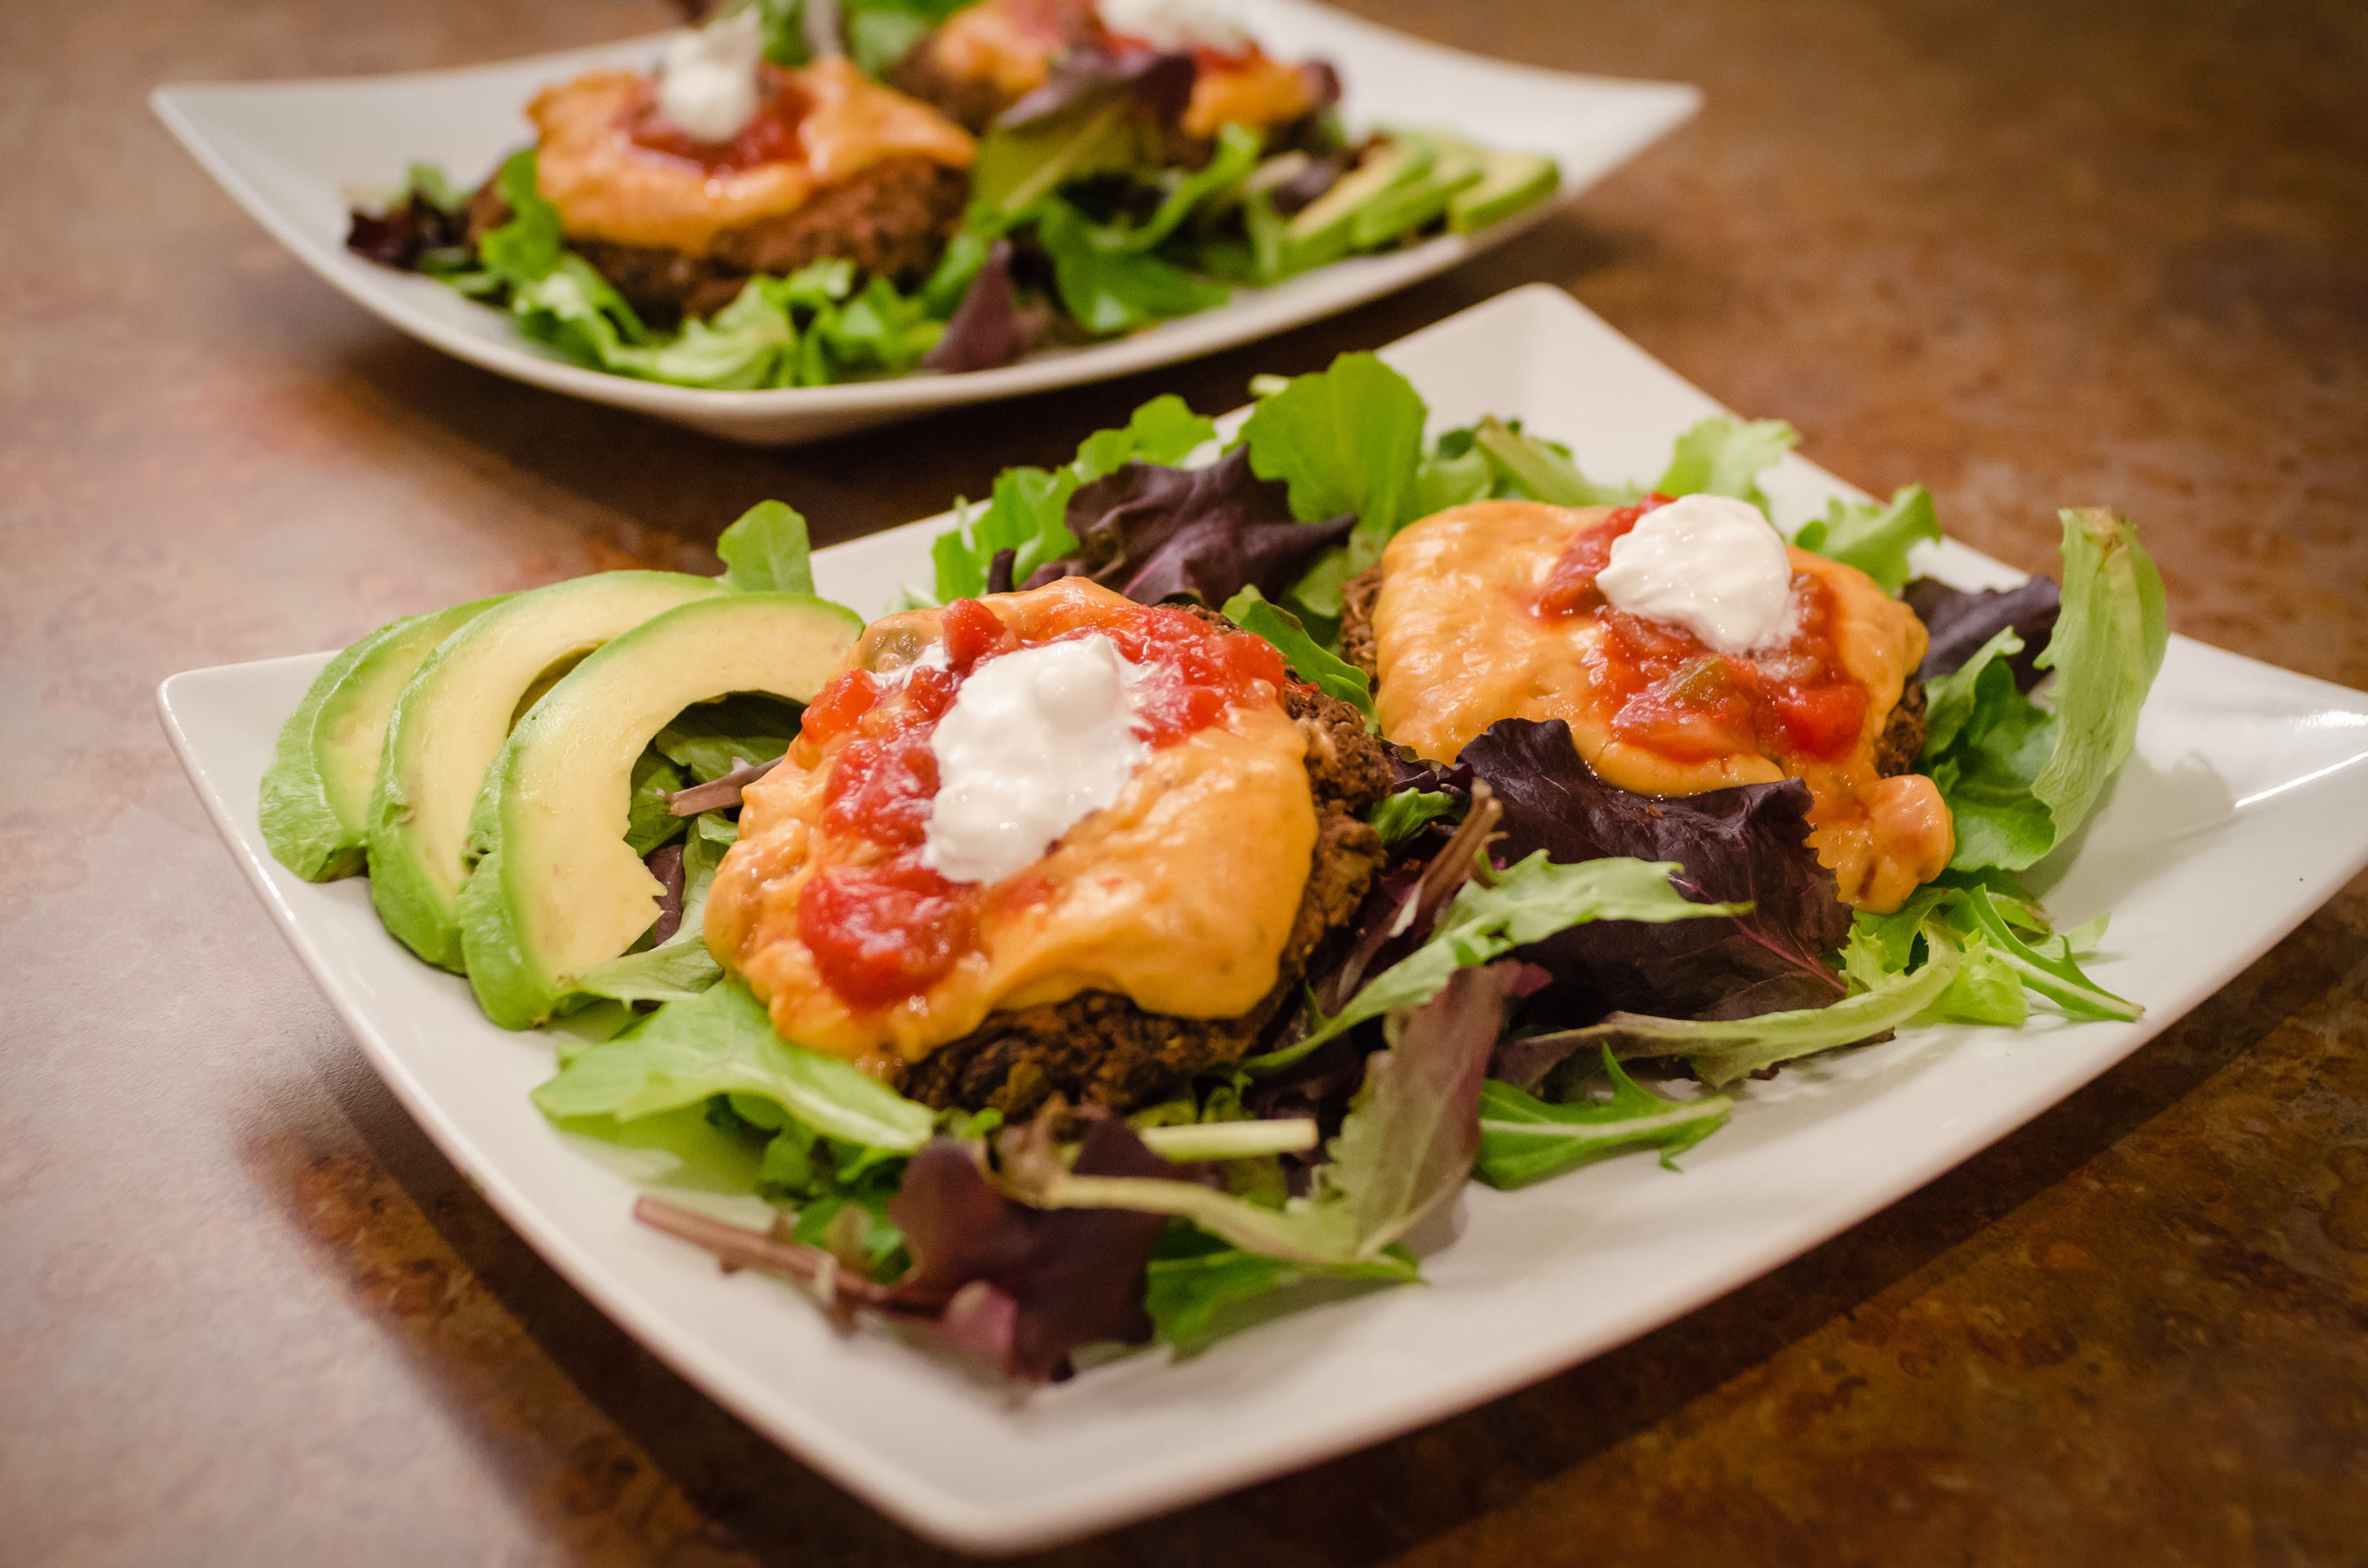 Black bean burger on a plate of greens with cheese sauce, salsa and sour cream